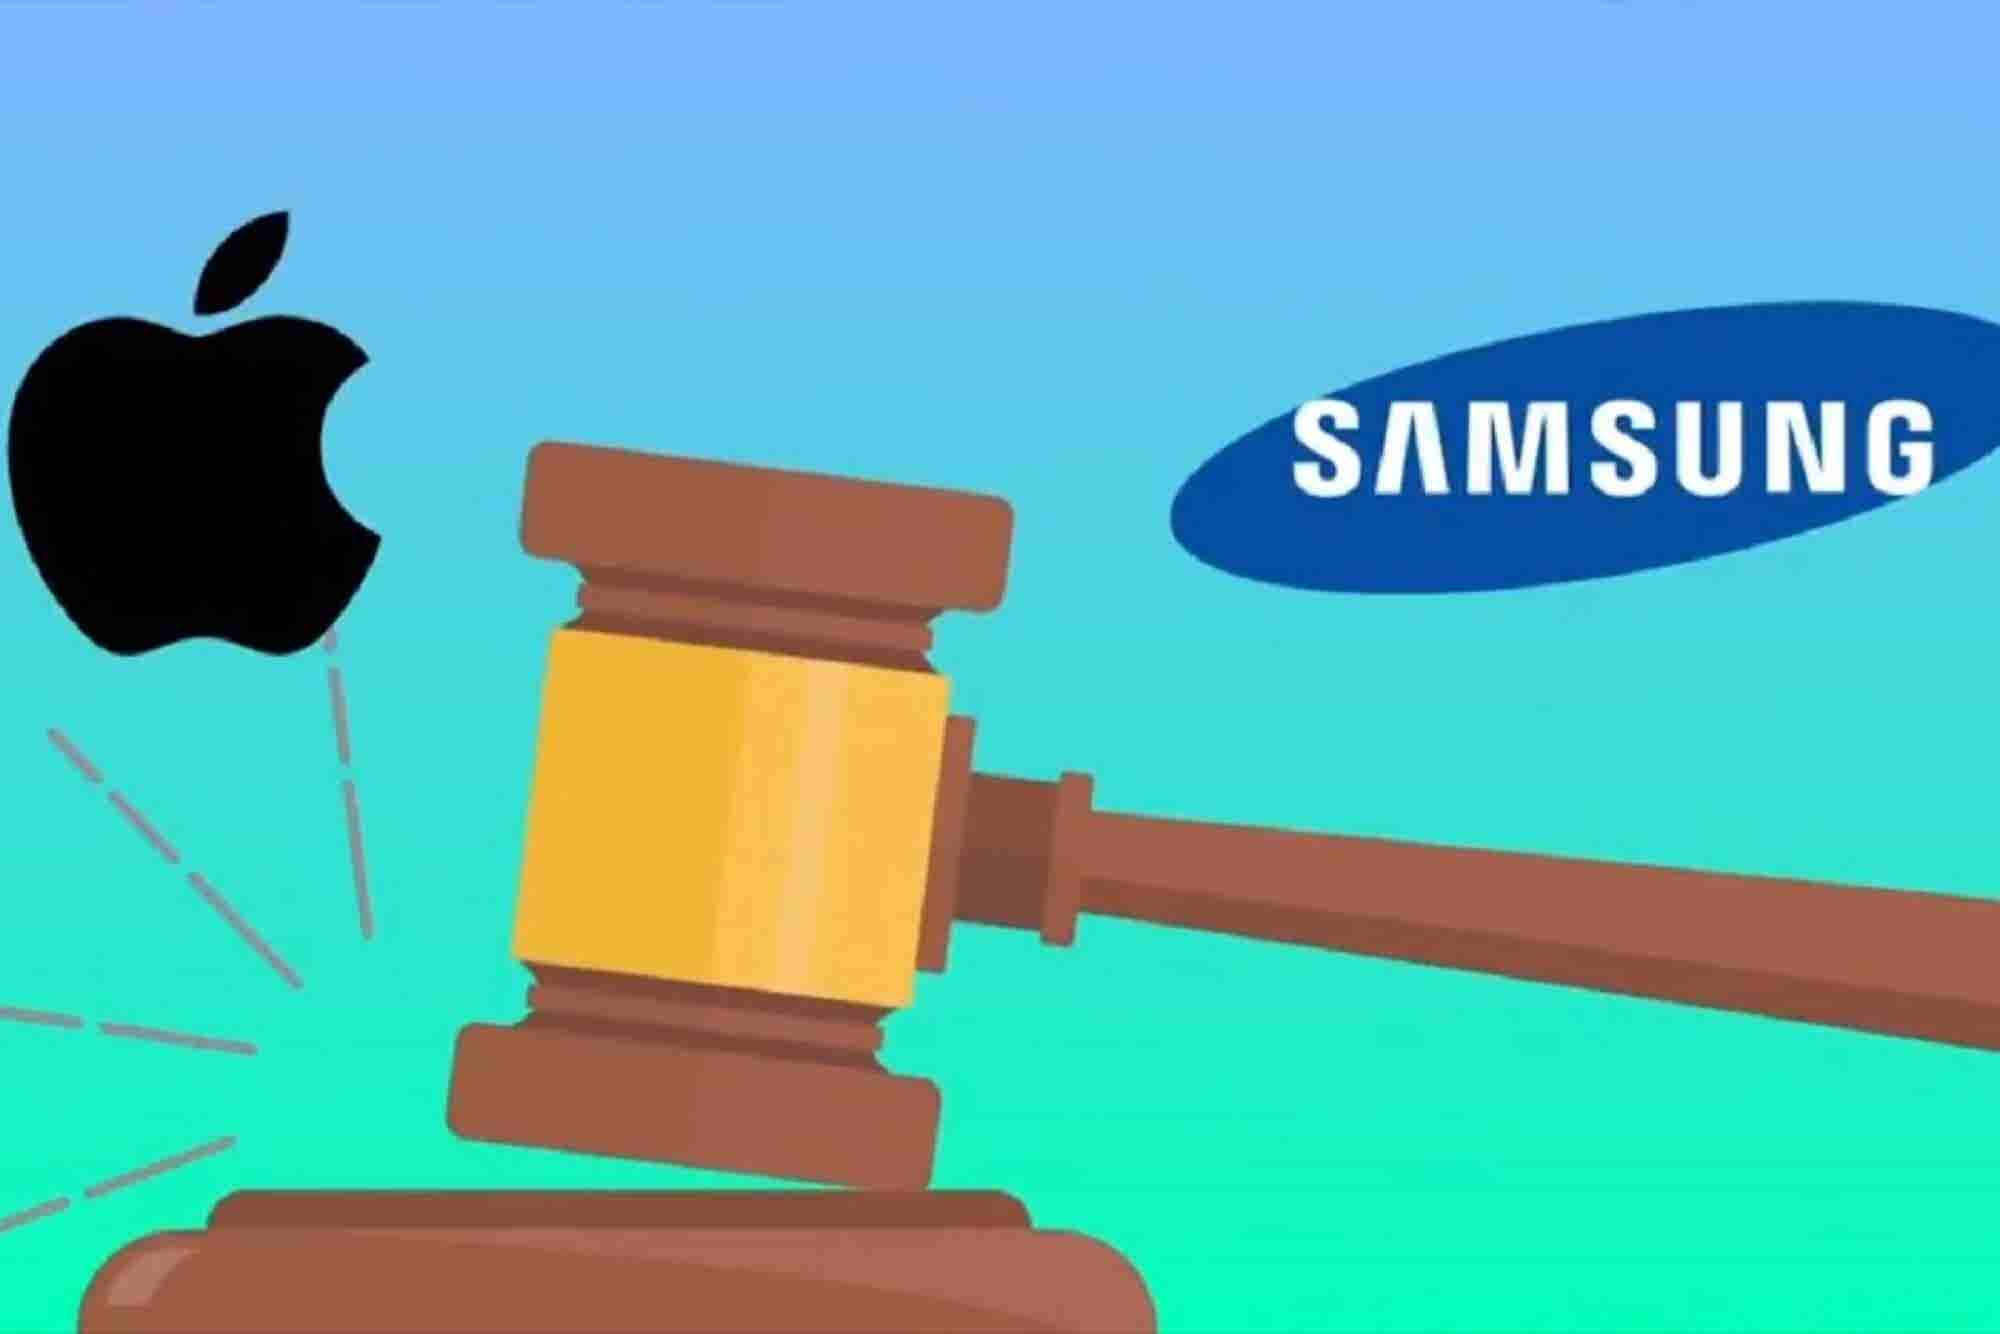 Samsung, Apple End Bitter Legal Battle & Zebpay Urges Users to Withdraw Funds. 4 Things to Know Today